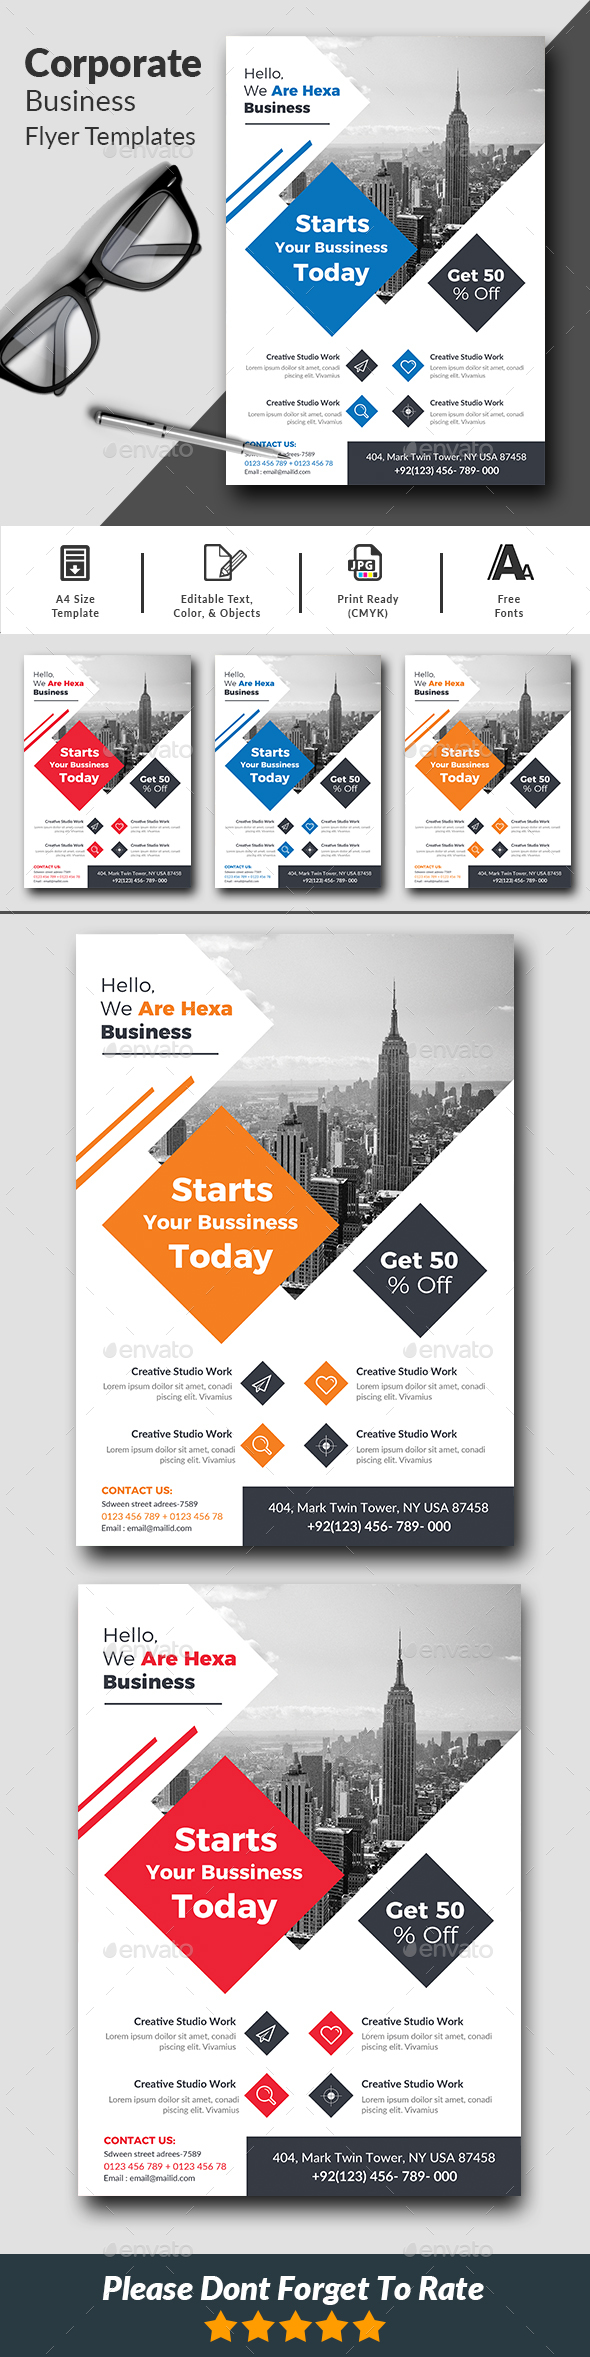 Corporate Business Flyer Templates - Corporate Flyers